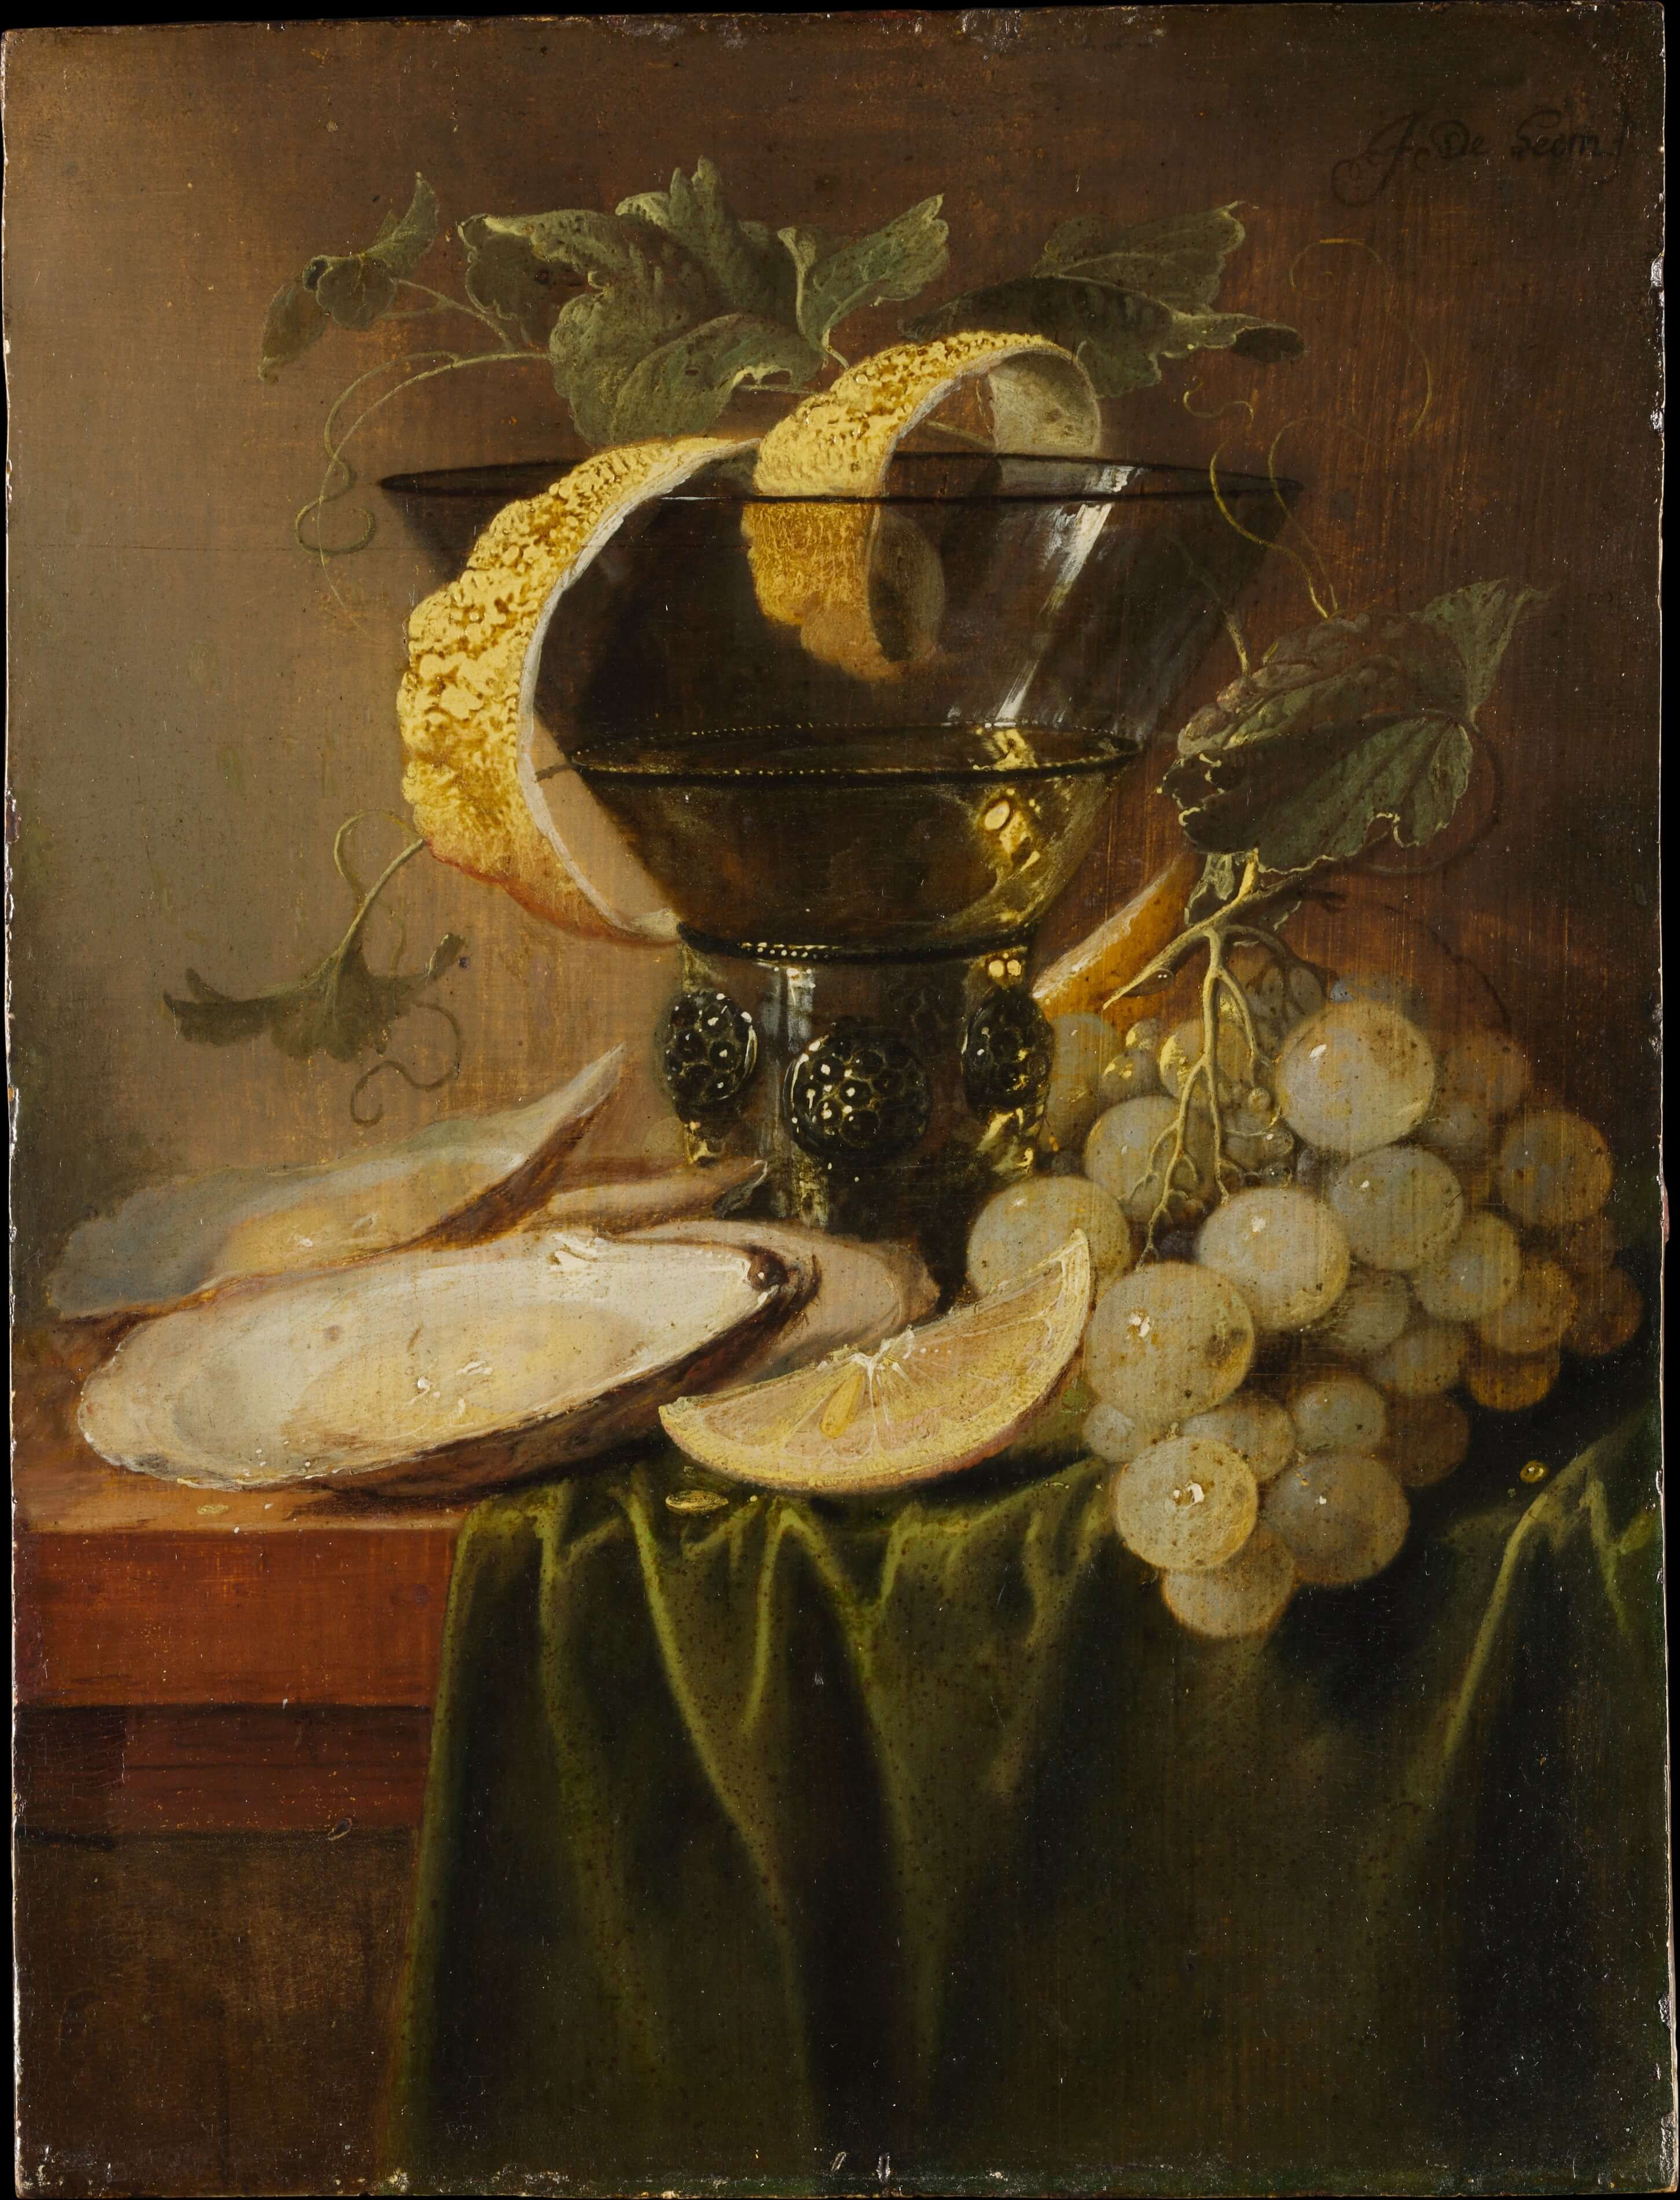 Still Life with a Glass of Oysters by Jan Davidsz de Heem Dutch Golden Age